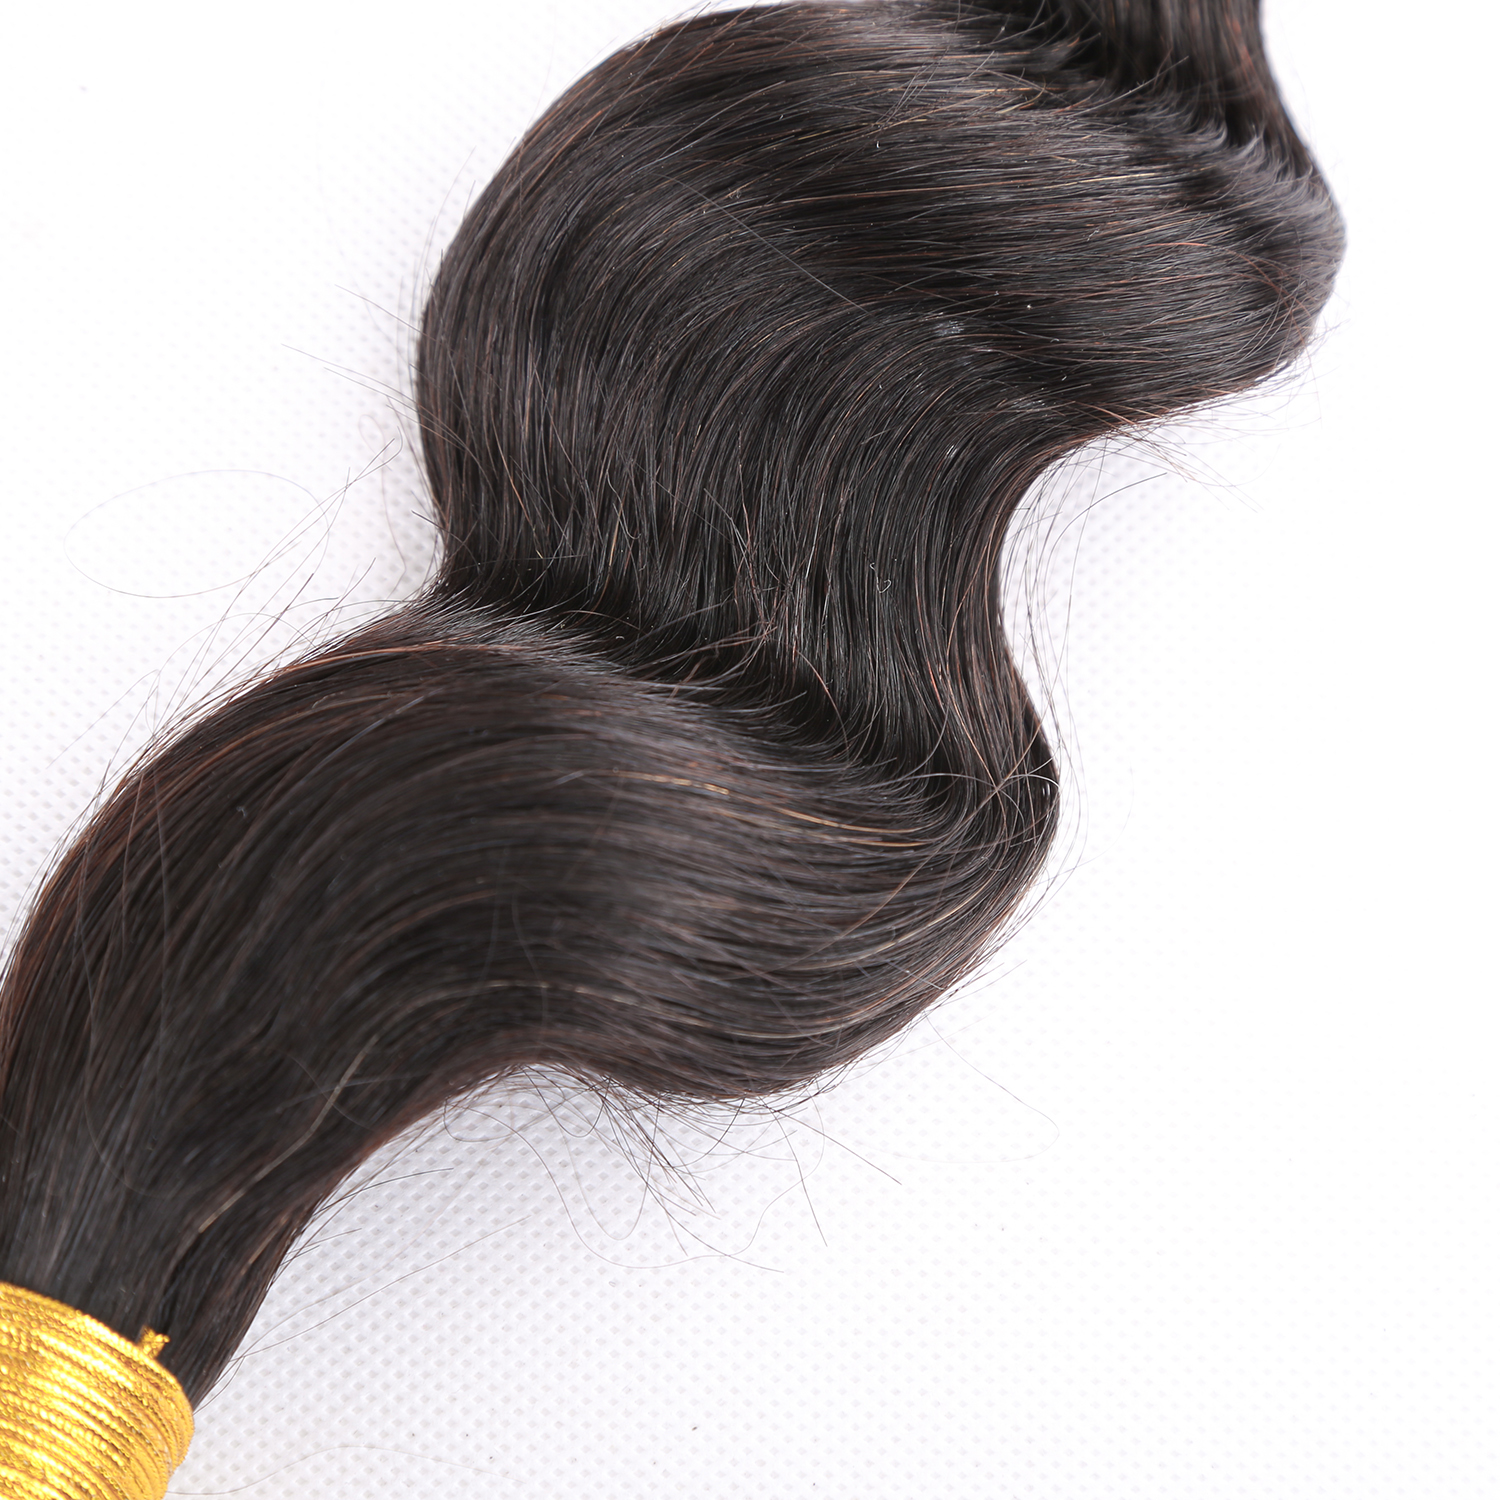 100% Loose Wave Bulk Hair Crochet Pre Braid Hair Extensions Without Weft 7a Virgin Human Hair